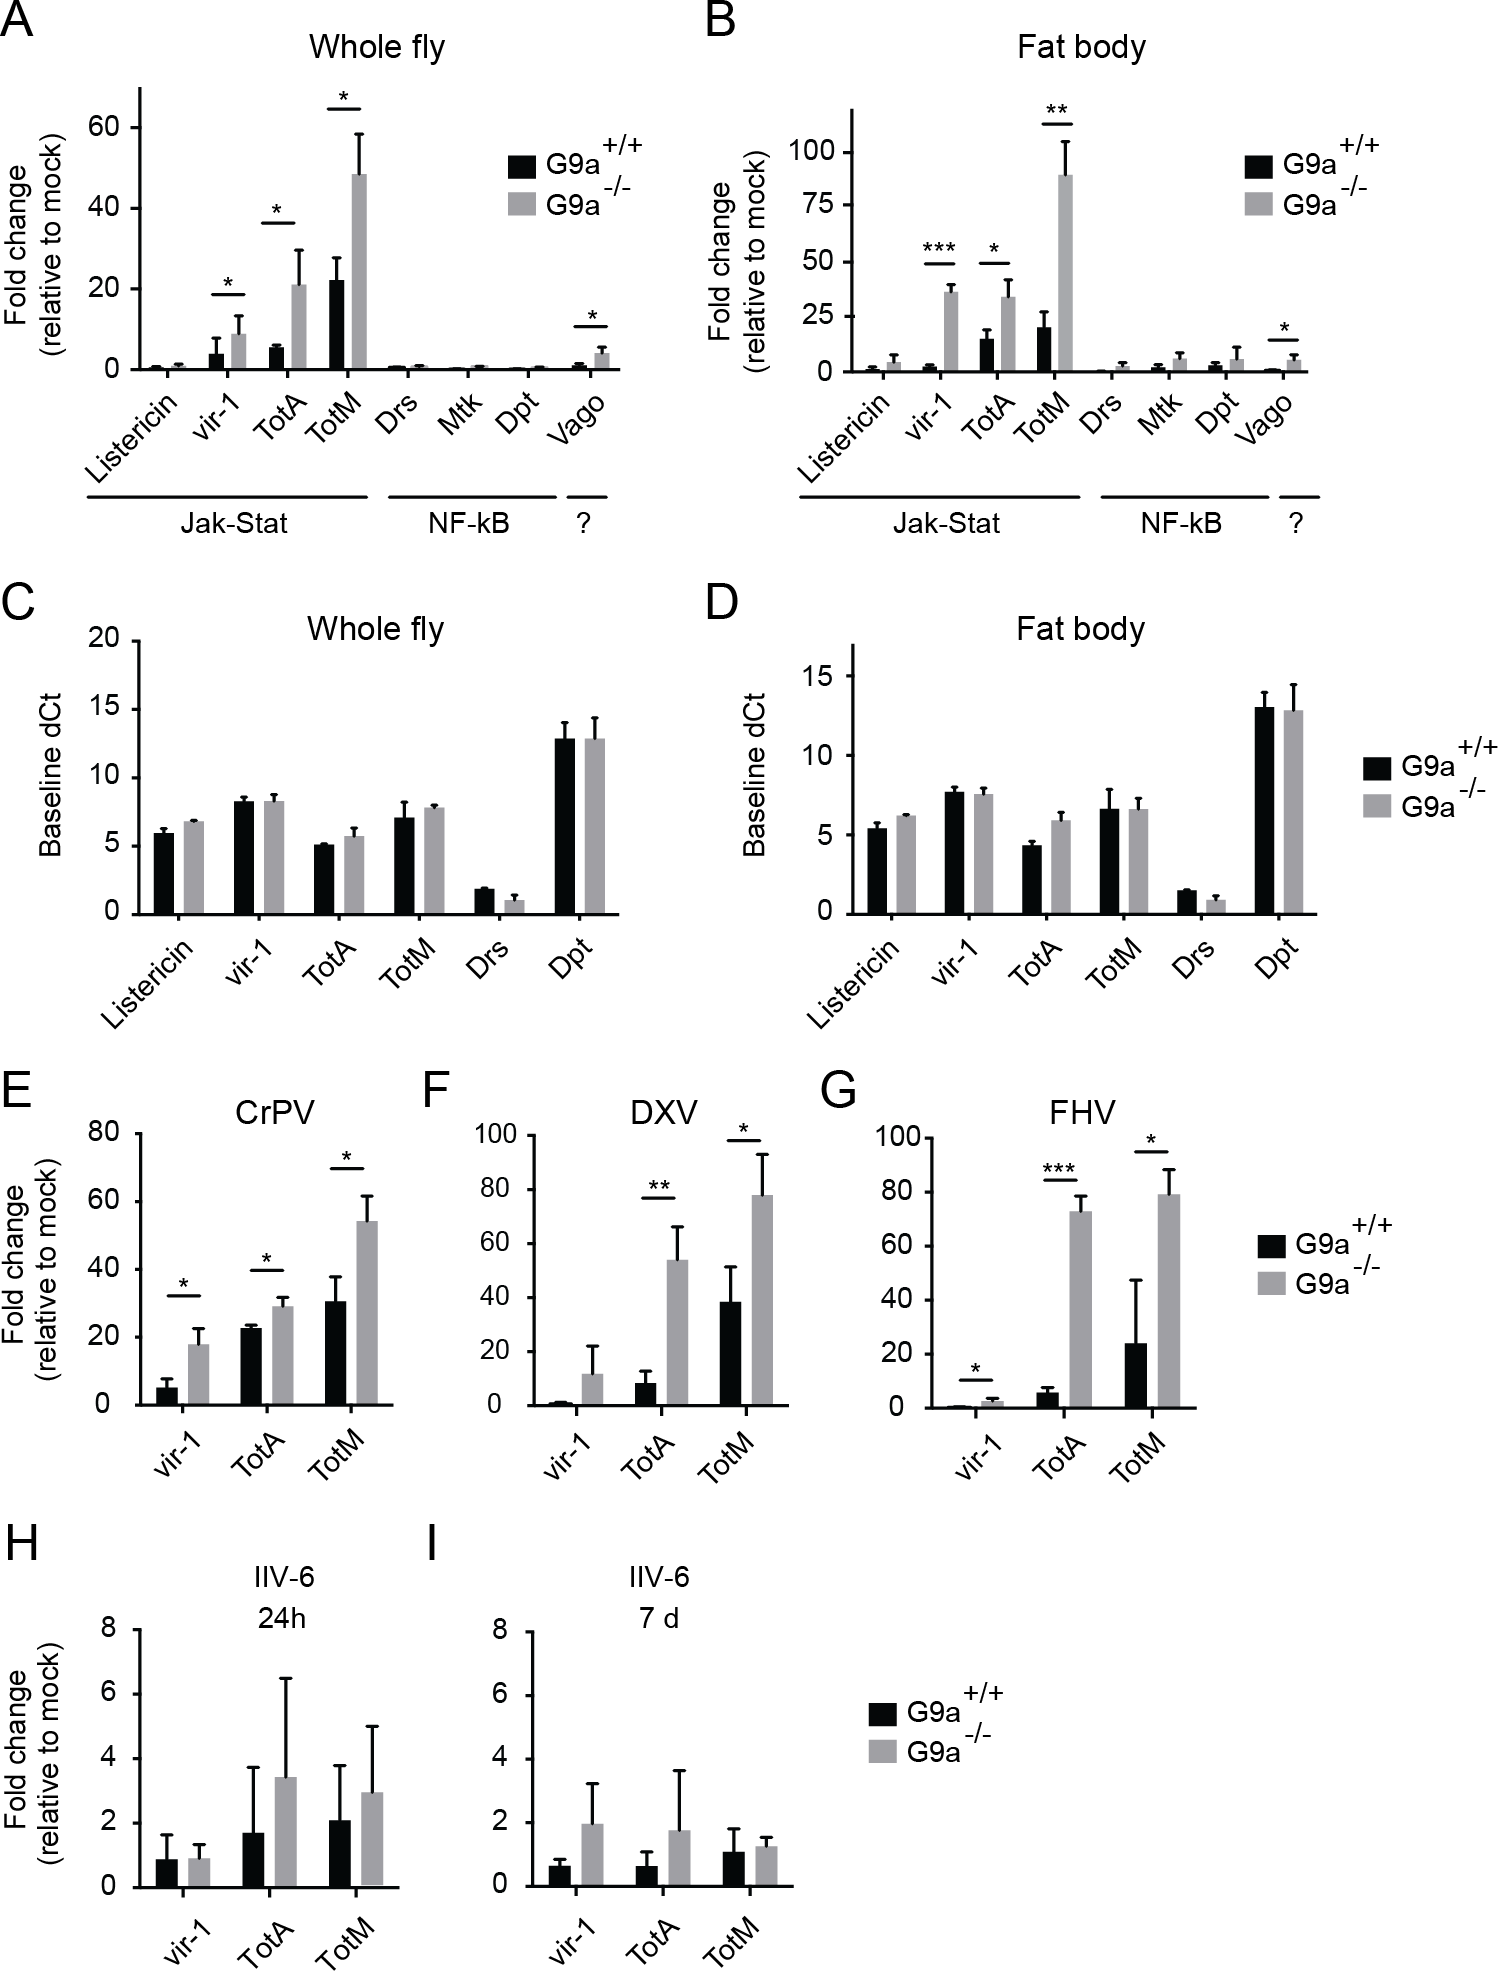 Hyperactivation of the Jak-Stat pathway by virus infection of <i>G9a</i> mutants.